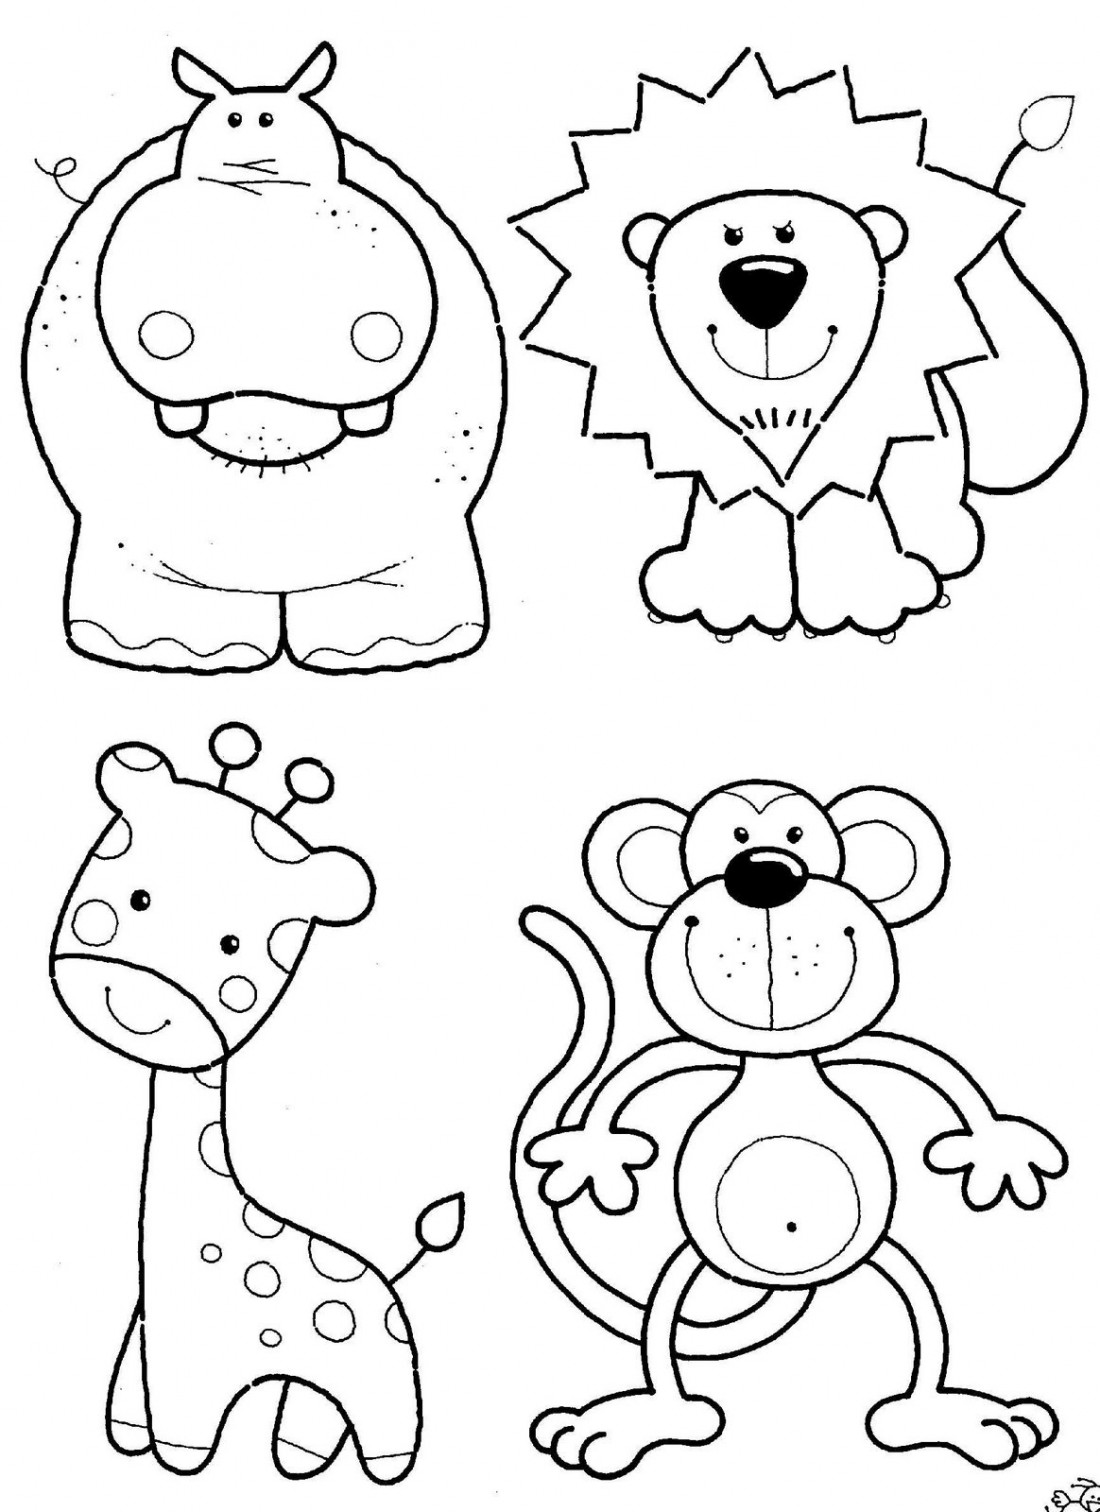 toddler coloring pages - Toddler Coloring Page